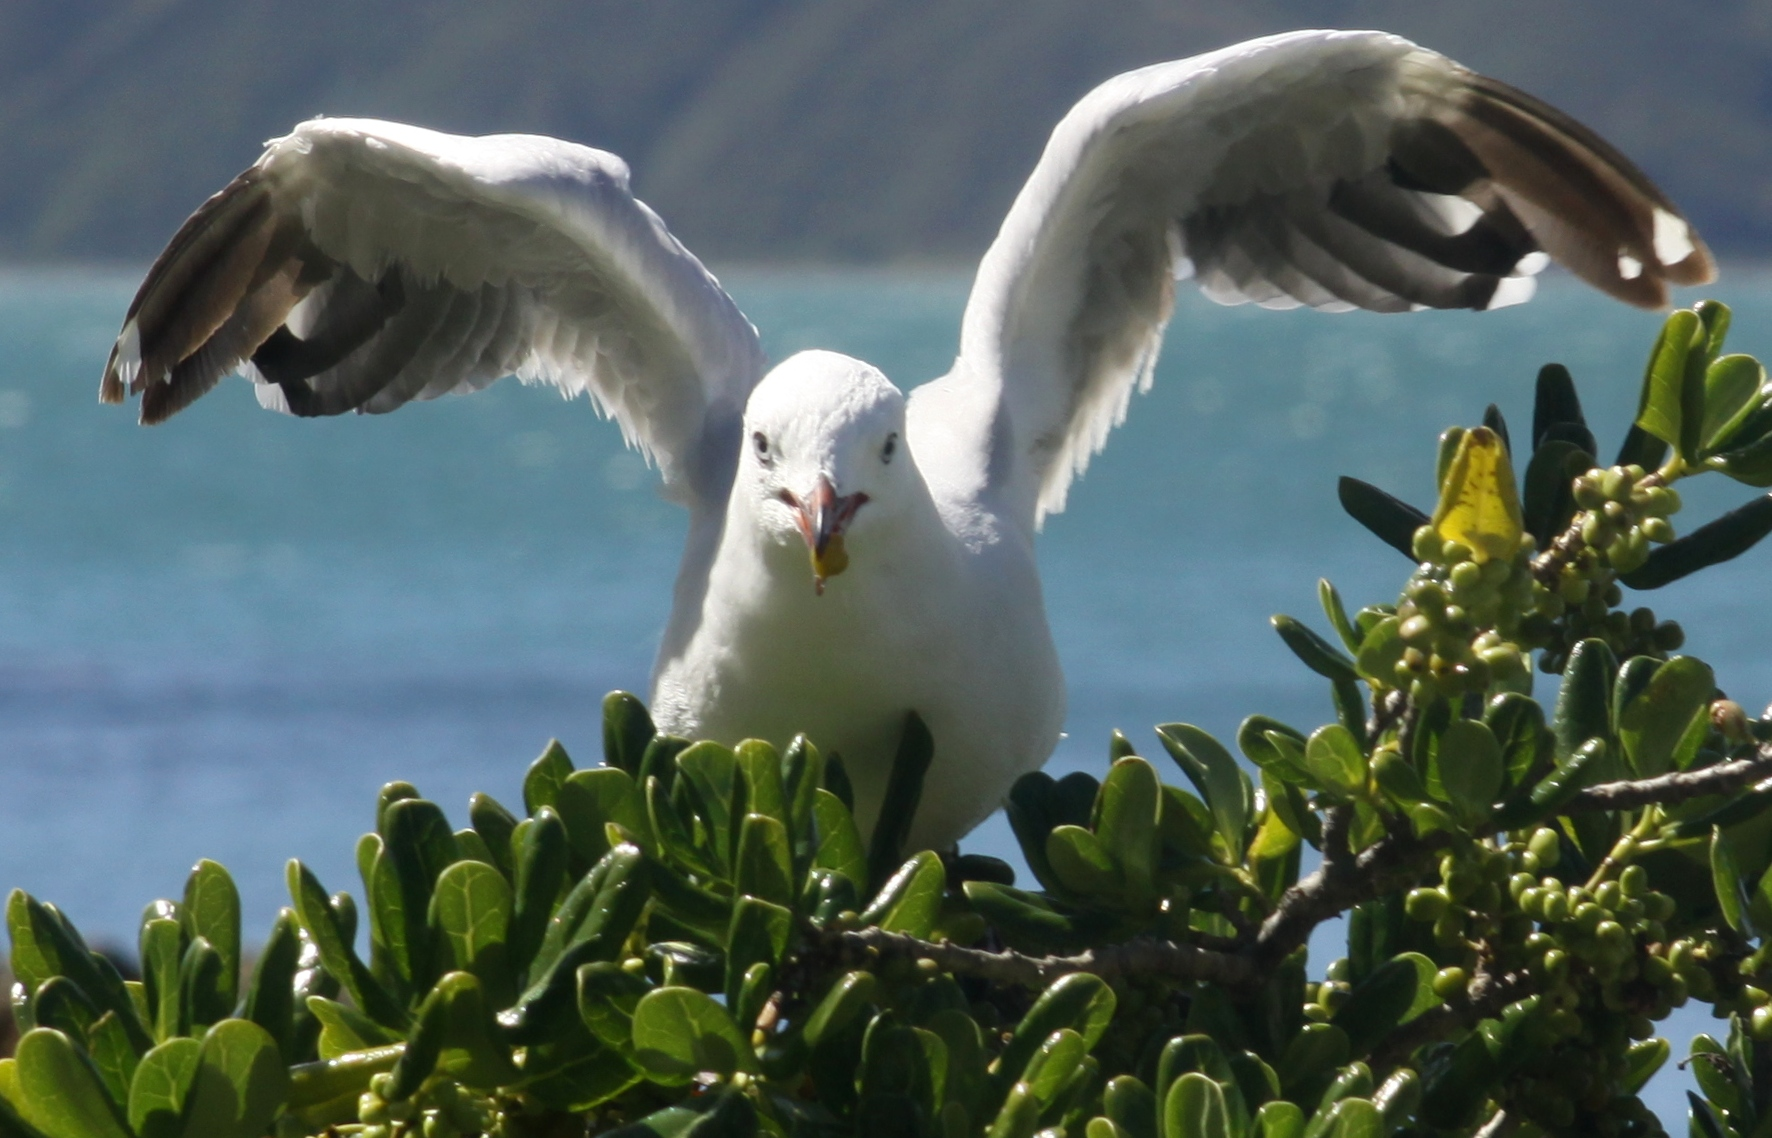 A red billed gull (Chroicocephalus scopulinus) eating Taupata (Coprosma repens) berries. A number of red billed gulls landed on the same tree and picked off berries. Photo taken at Scorching Bay, Wellington, New Zealand, by Tony Wills on January 23, 2014.